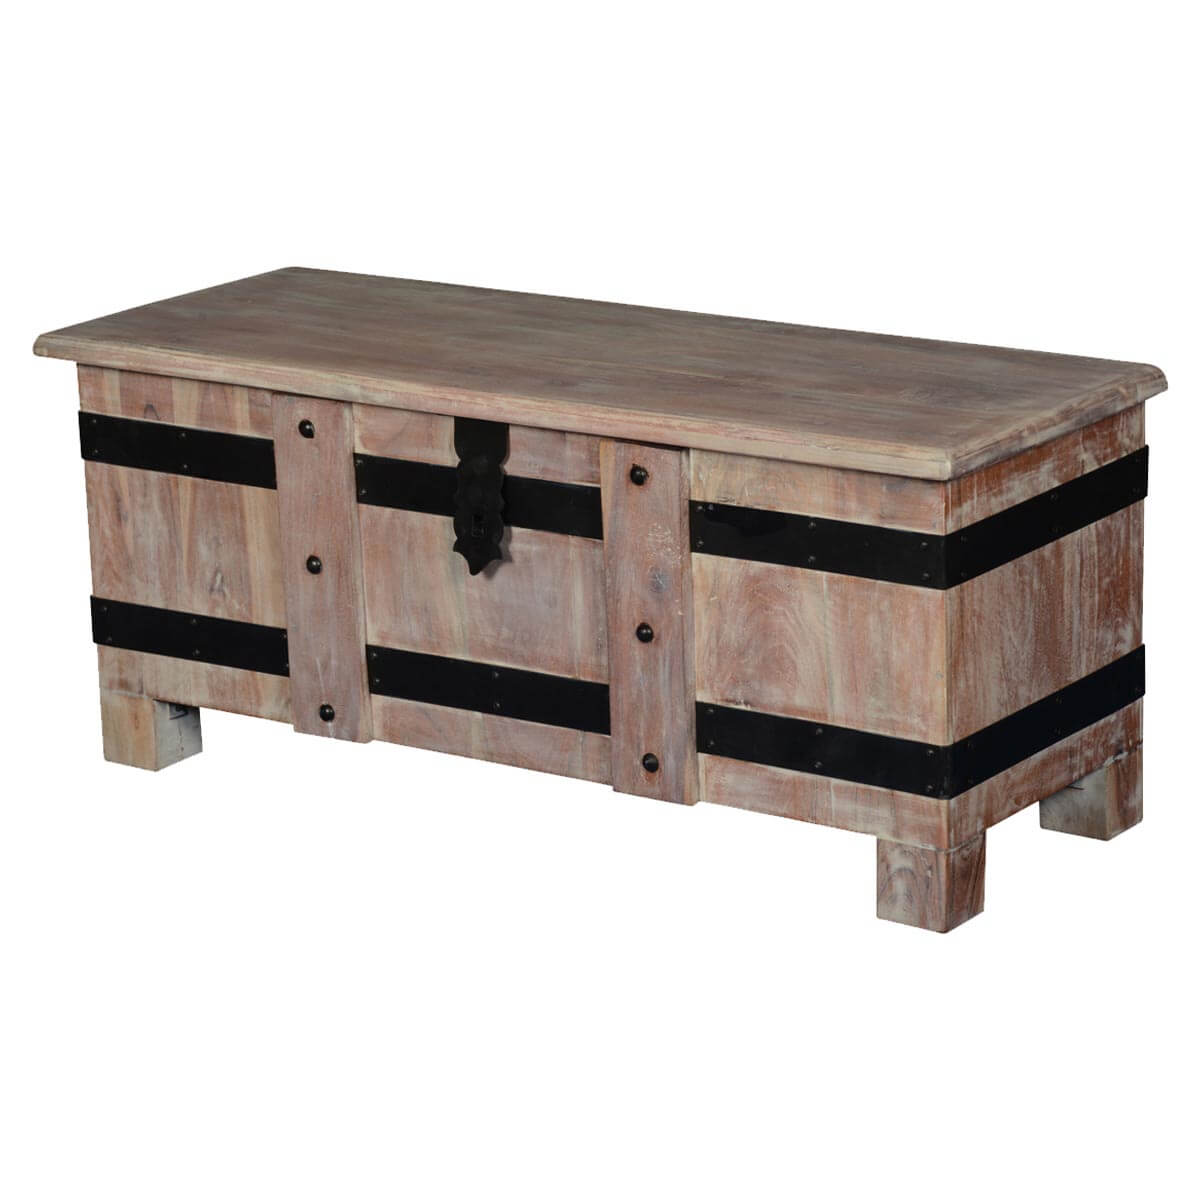 Wondrous Frosted Gothic Mango Wood Standing Coffee Table Chest Gmtry Best Dining Table And Chair Ideas Images Gmtryco